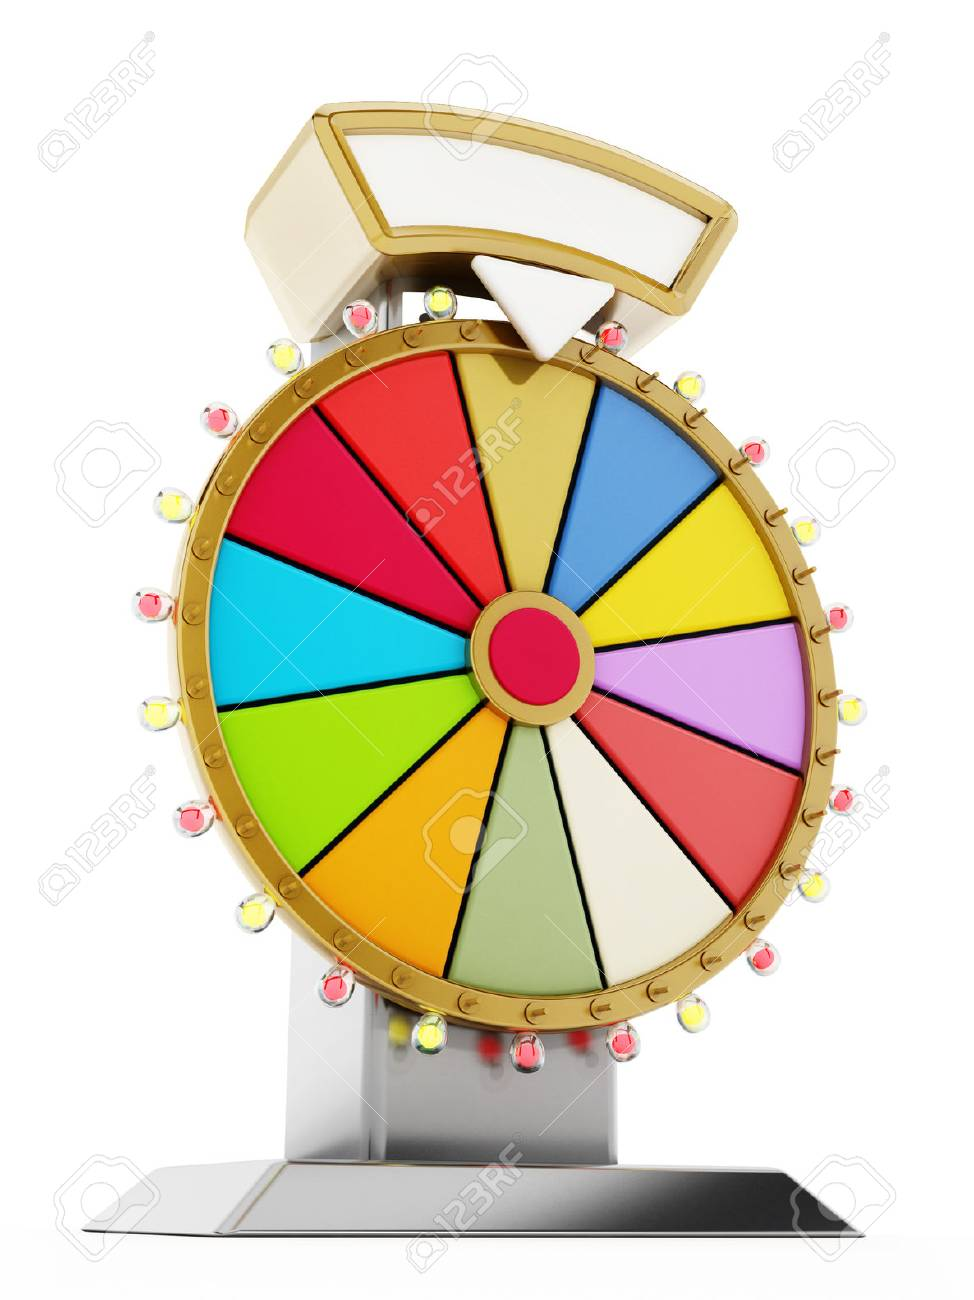 Wheel of fortune isolated on white background. 3D illustration. - 61035750